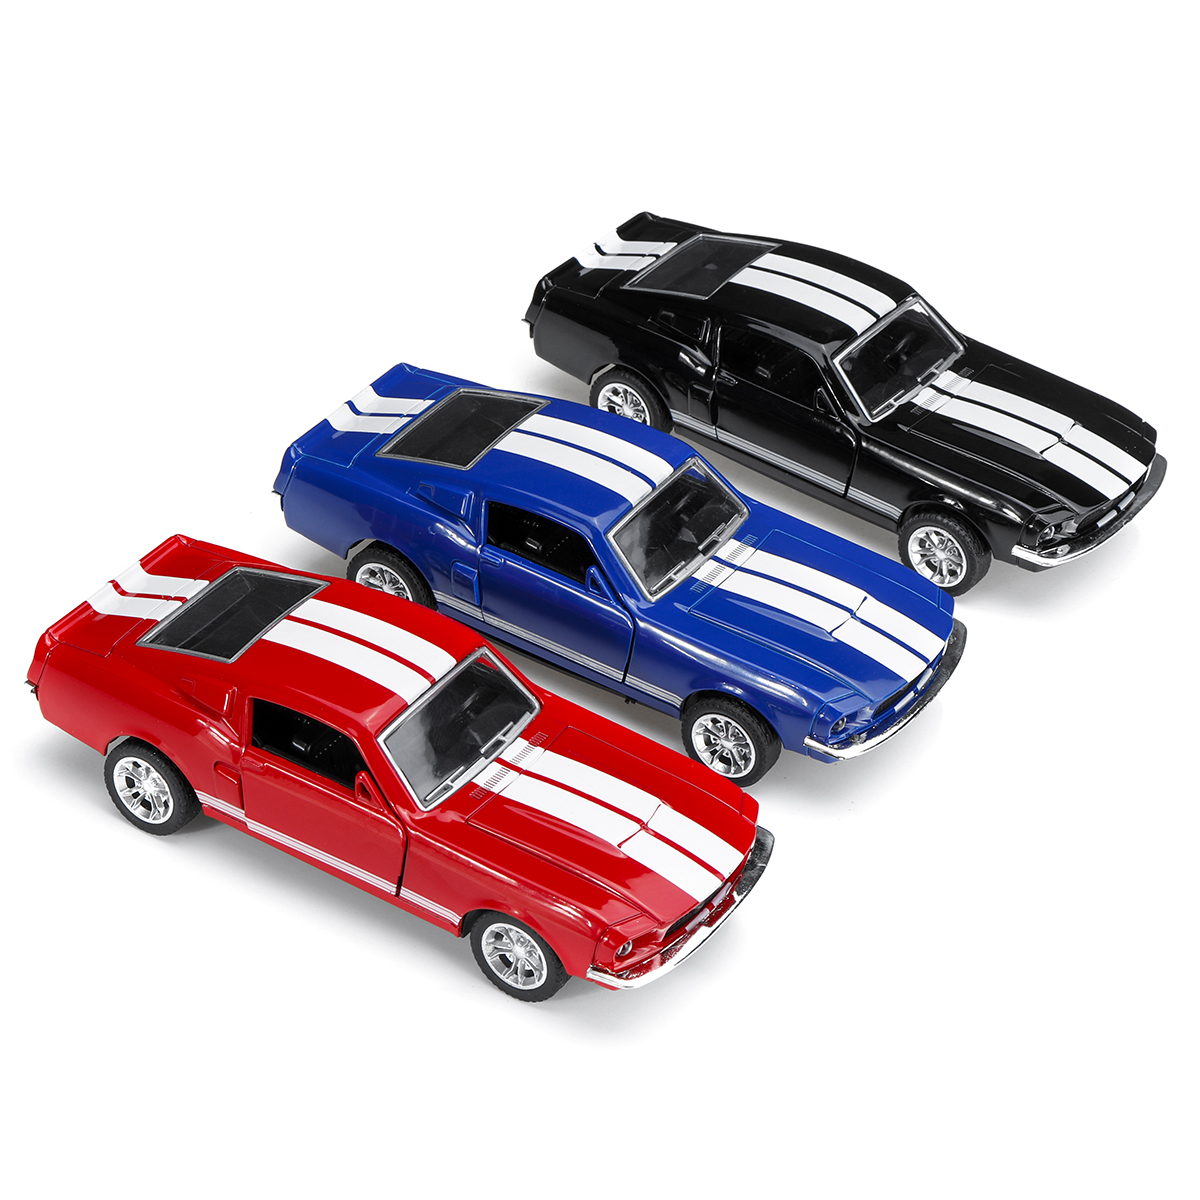 1:32 Alloy Fords Mustang GT 1967 GT500 Return Diecast Car Model Toy for Children Gift - Photo: 2